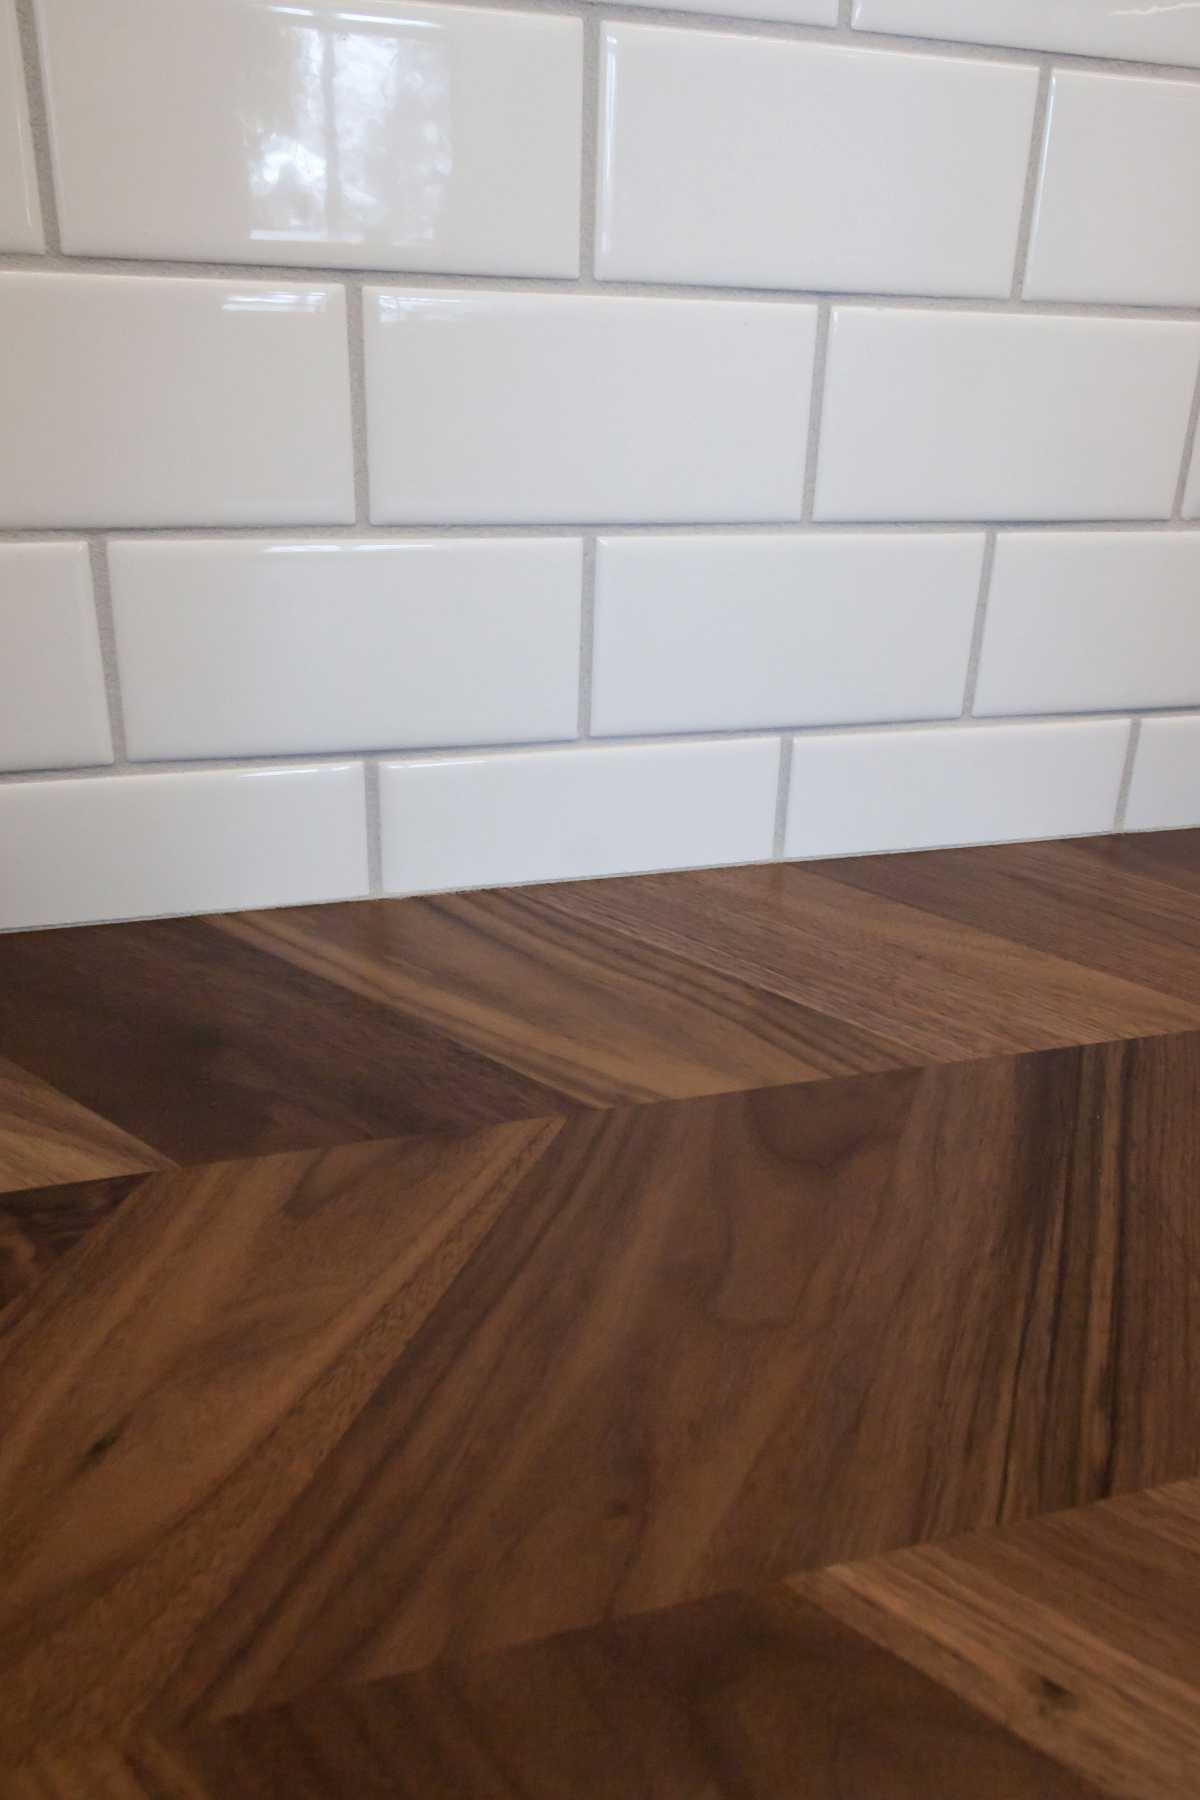 A detailed view of the white subway tile and gorgeous herringbone, wood countertops.